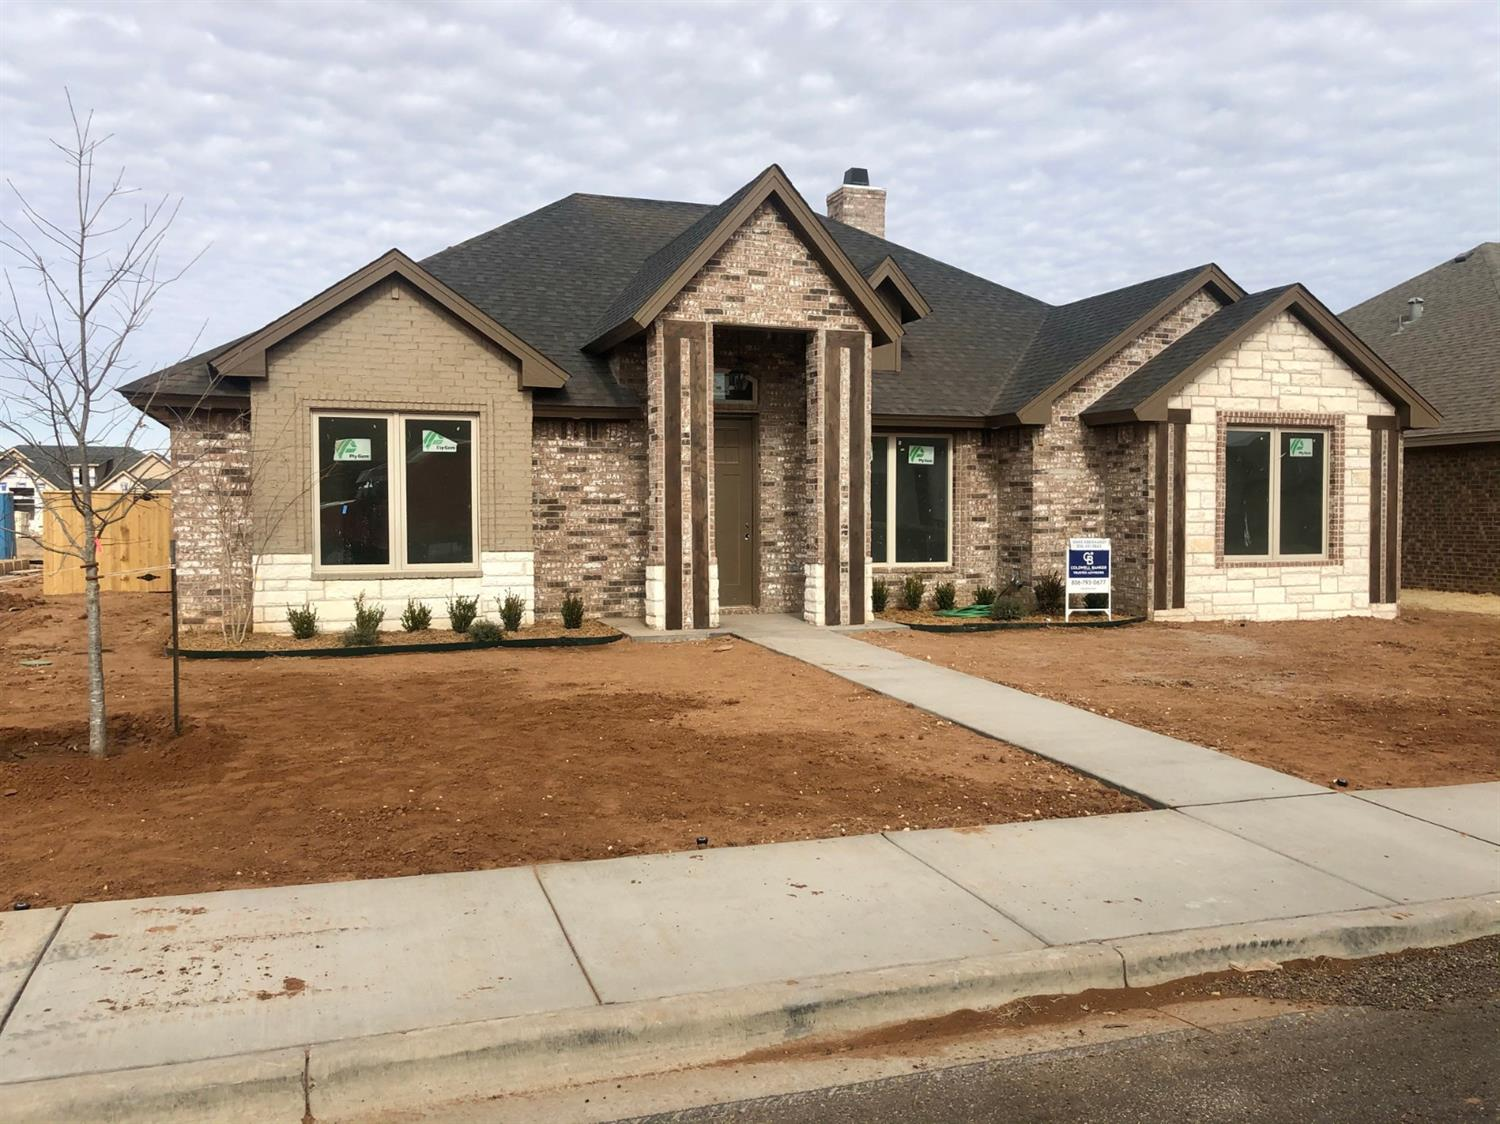 Beautiful new construction built by M & M Homes in Preston Manor! Open kitchen with island to the living area. Beautiful quartz counters. Gorgeous lighting. Perfect for entertaining. 3 bedroom 2.5 bath 2 car garage. Enjoy the club house, pool & tennis courts. Dog park and walking path adds to this lovely neighborhood. Beautiful colors & finishes. M & M Homes takes pride in their work. M & M Homes has been serving in the local construction industry for 20 years. Our motto, Building Homes for the Next Generation''is our core value as we strive to keep up with the changing trends and new technology in the construction field. Our goal is not only to be your builder of choice, but also to be the family builder for years to come.  Hurry to see this home and call it yours!